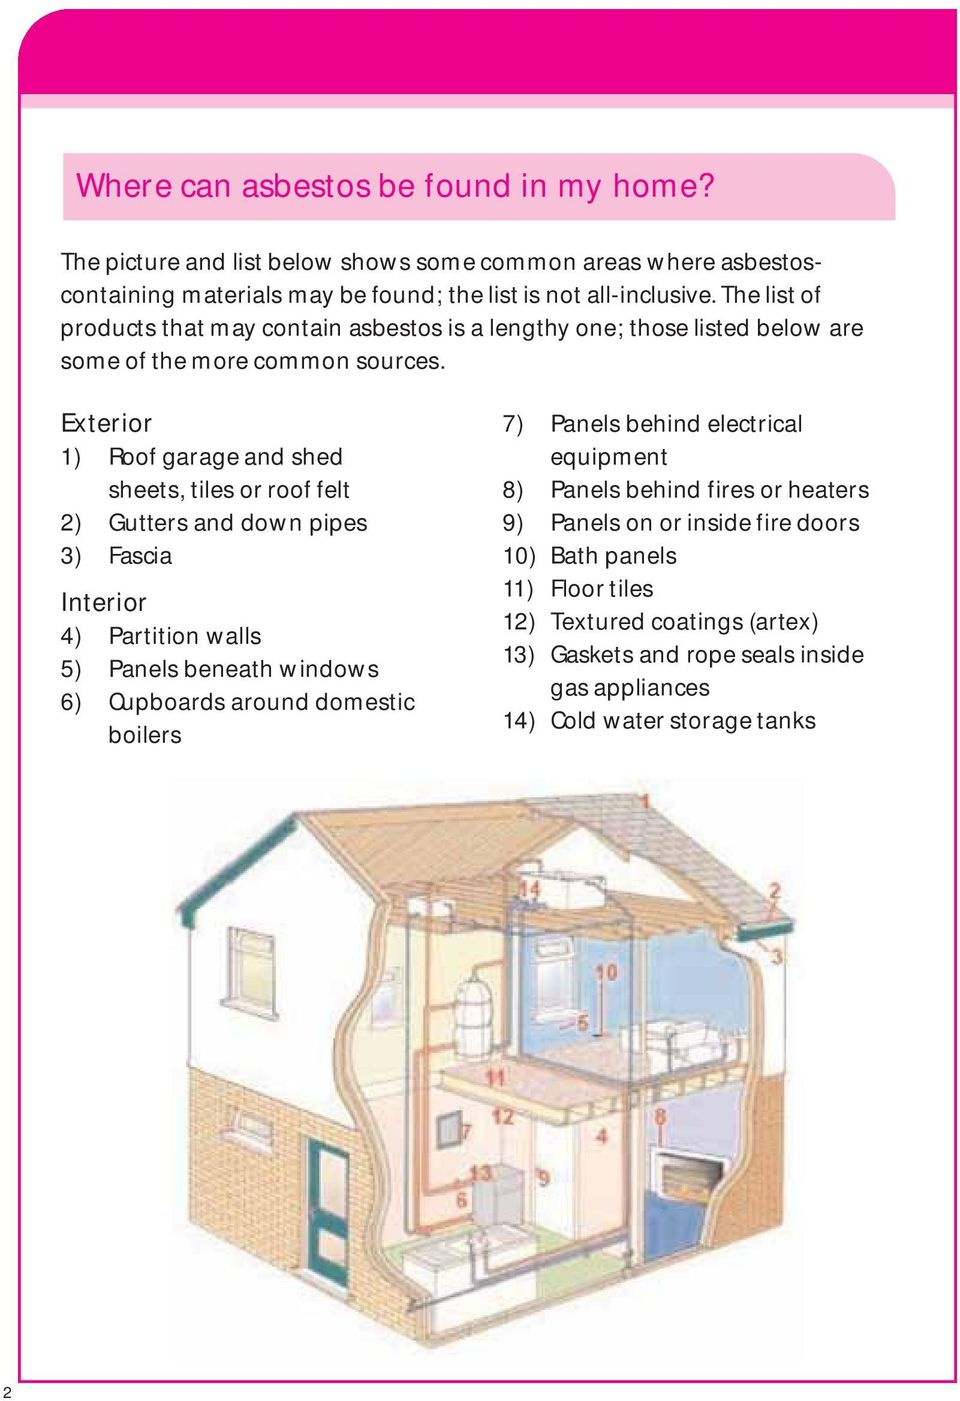 Exterior 1) Roof garage and shed sheets, tiles or roof felt 2) Gutters and down pipes 3) Fascia Interior 4) Partition walls 5) Panels beneath windows 6) Cupboards around domestic